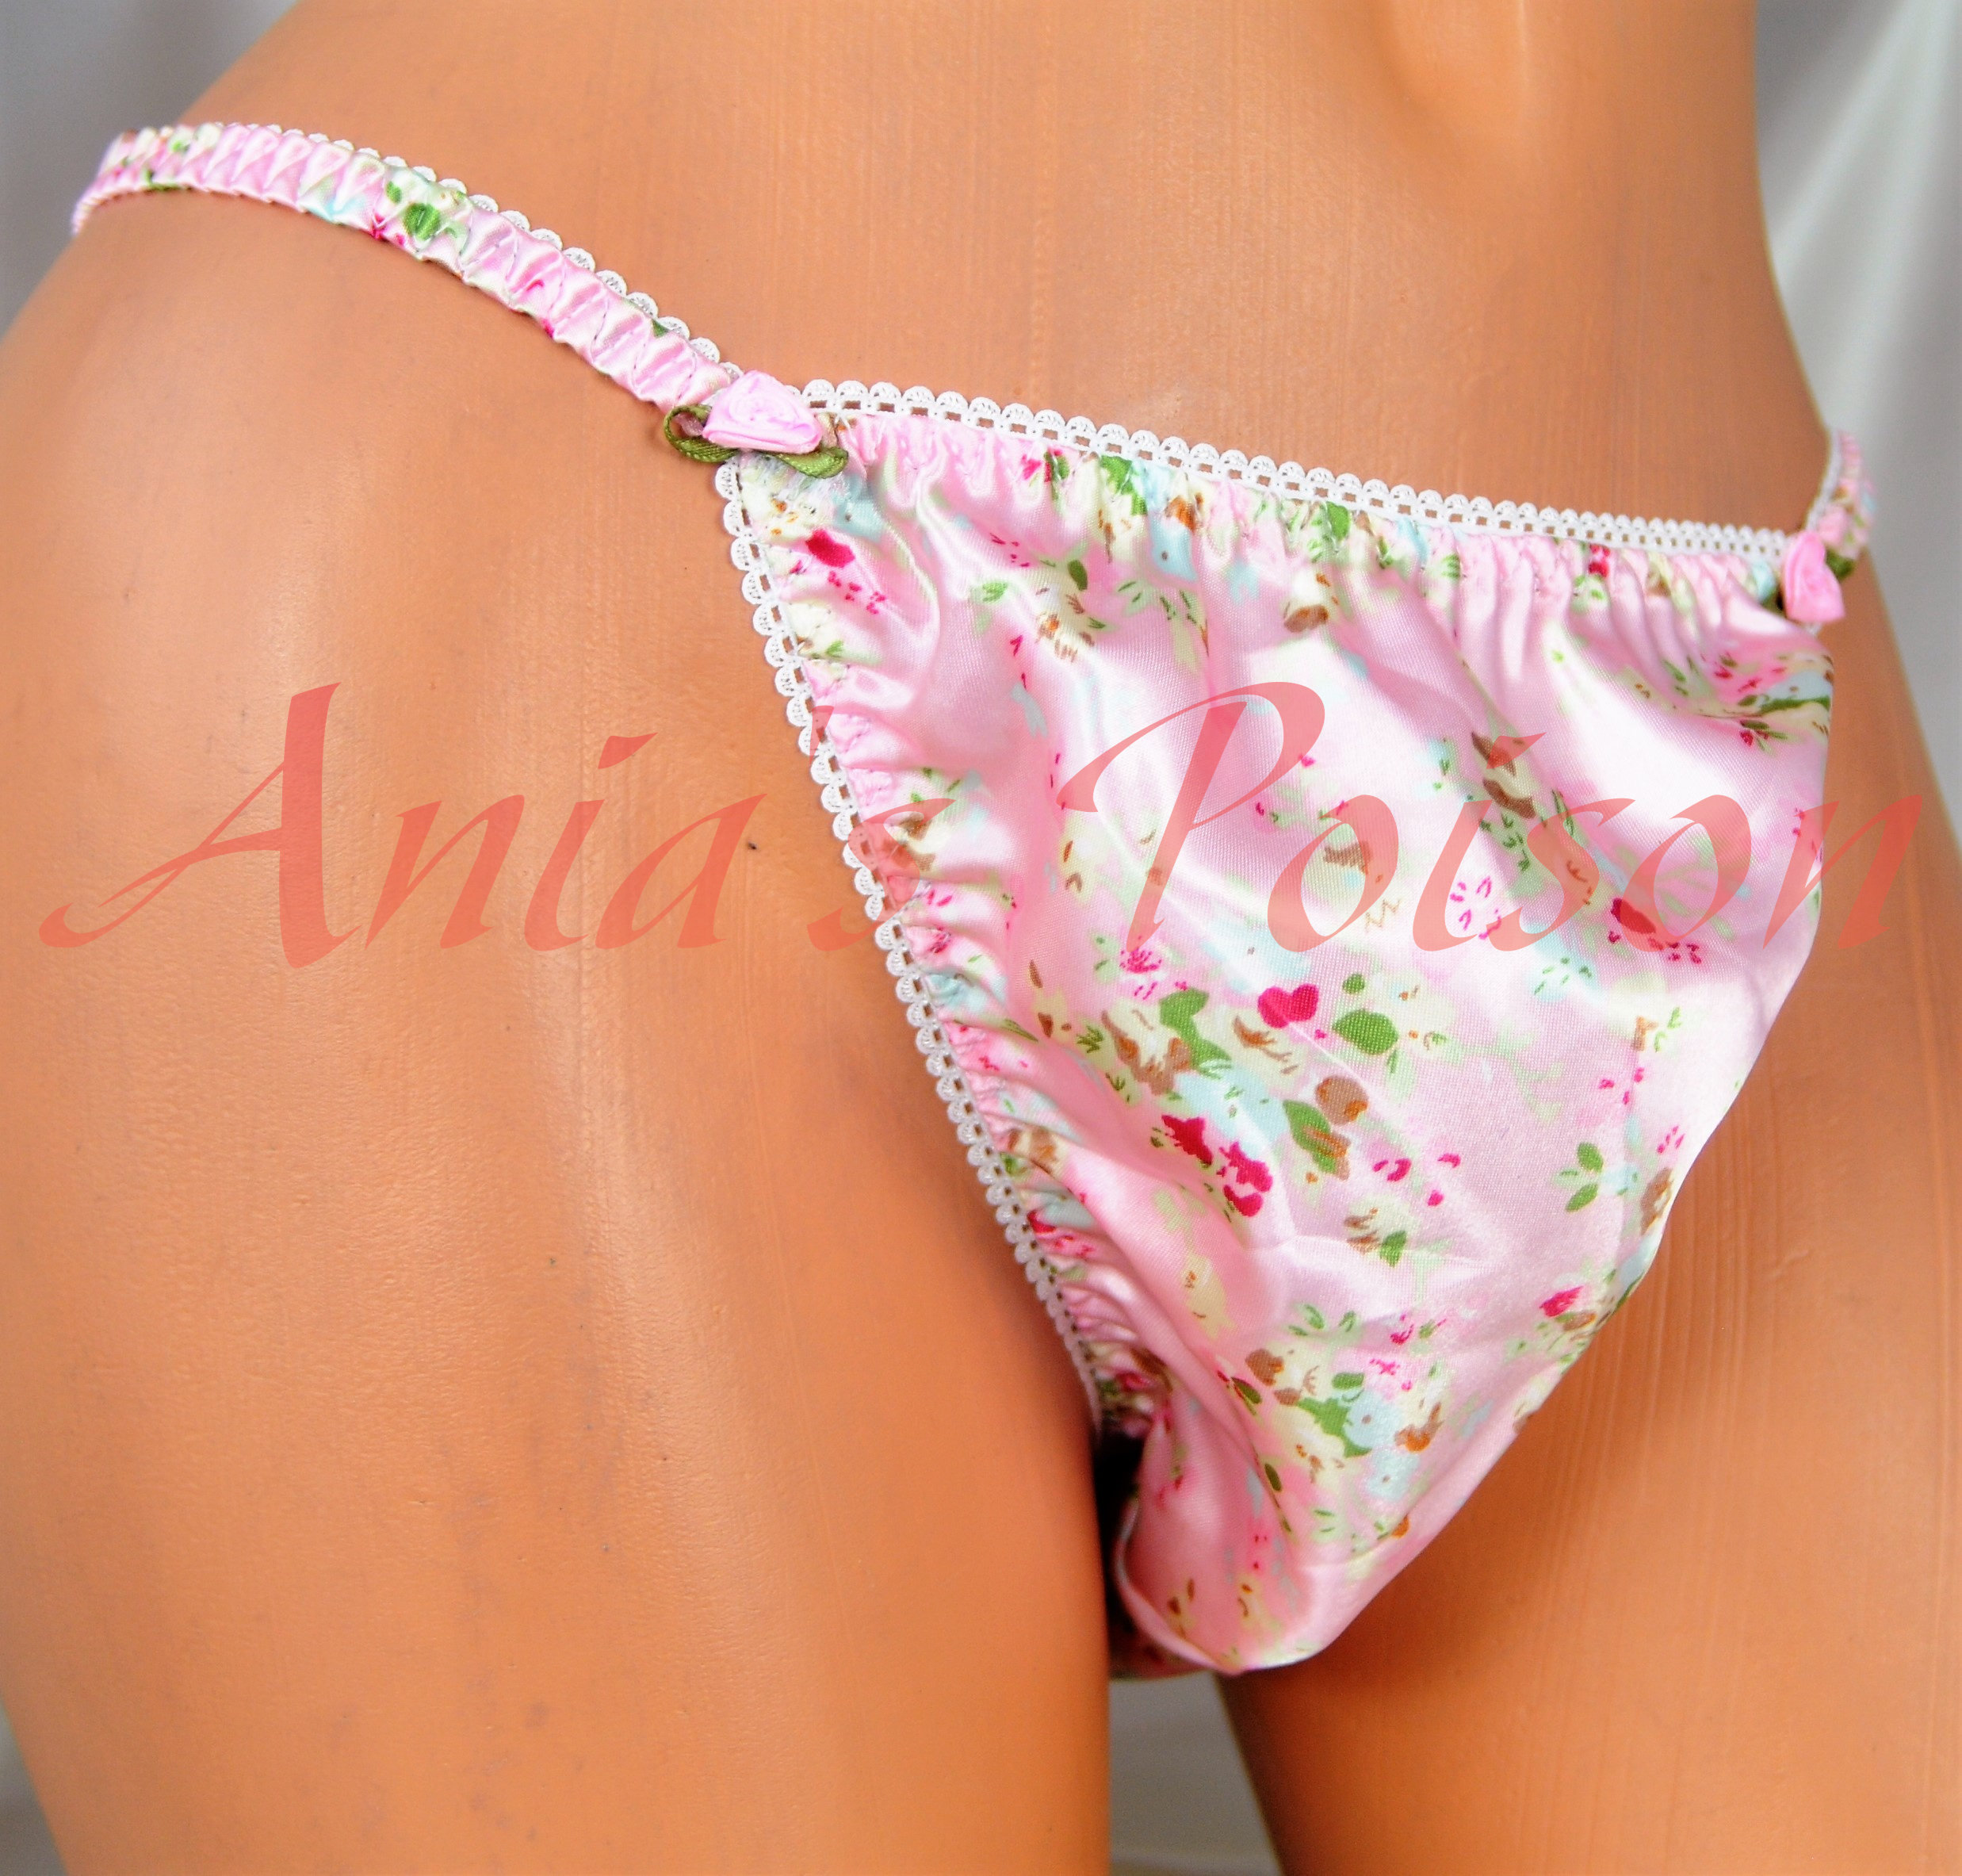 Ania's Poison MANties S - XXL Floral Easter Novelty Prints Super Rare 100% polyester string bikini sissy mens underwear panties